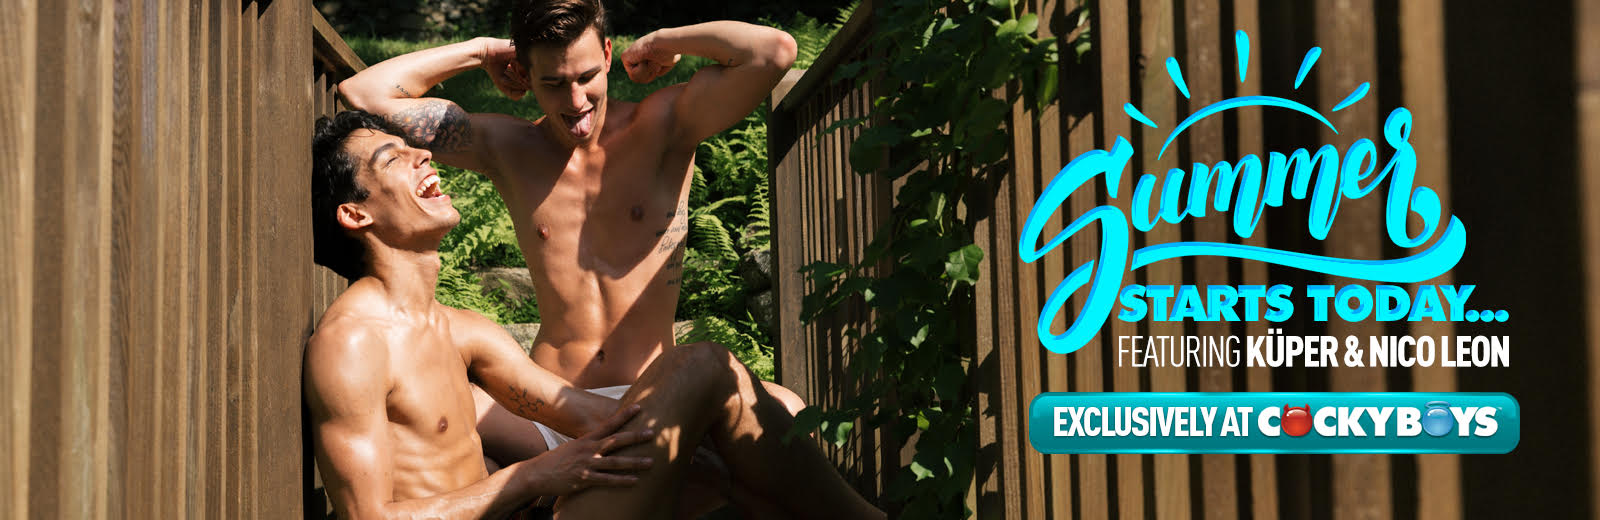 CockyBoys - Summer Starts Today - Kuper & Nico Leon